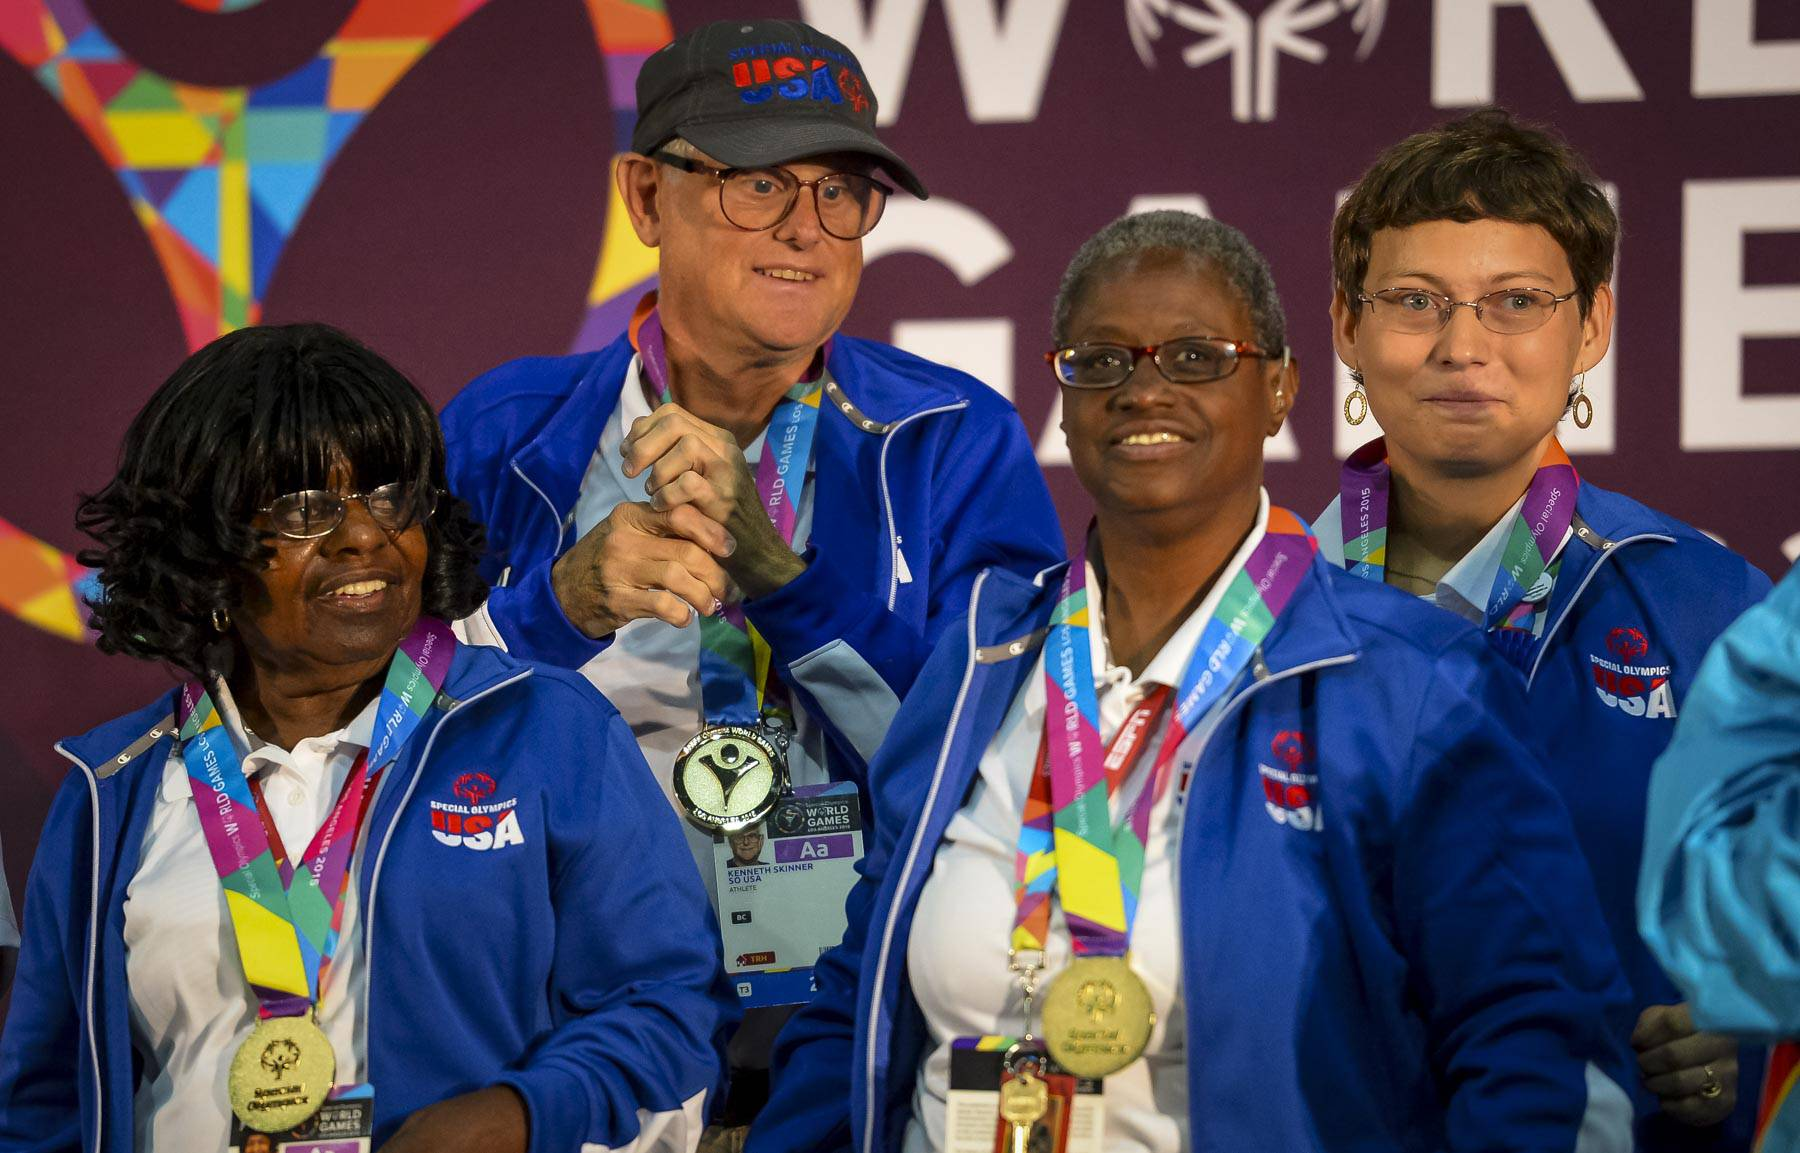 United States' bocce team players from left to right, Mary Davis, Kenneth Skinner, Sheryl Fairbanks and Nicole Landoskey get their gold medal in team play during the 2015 Special Olympics World Games, Monday, July 27, 2015, in Los Angeles.